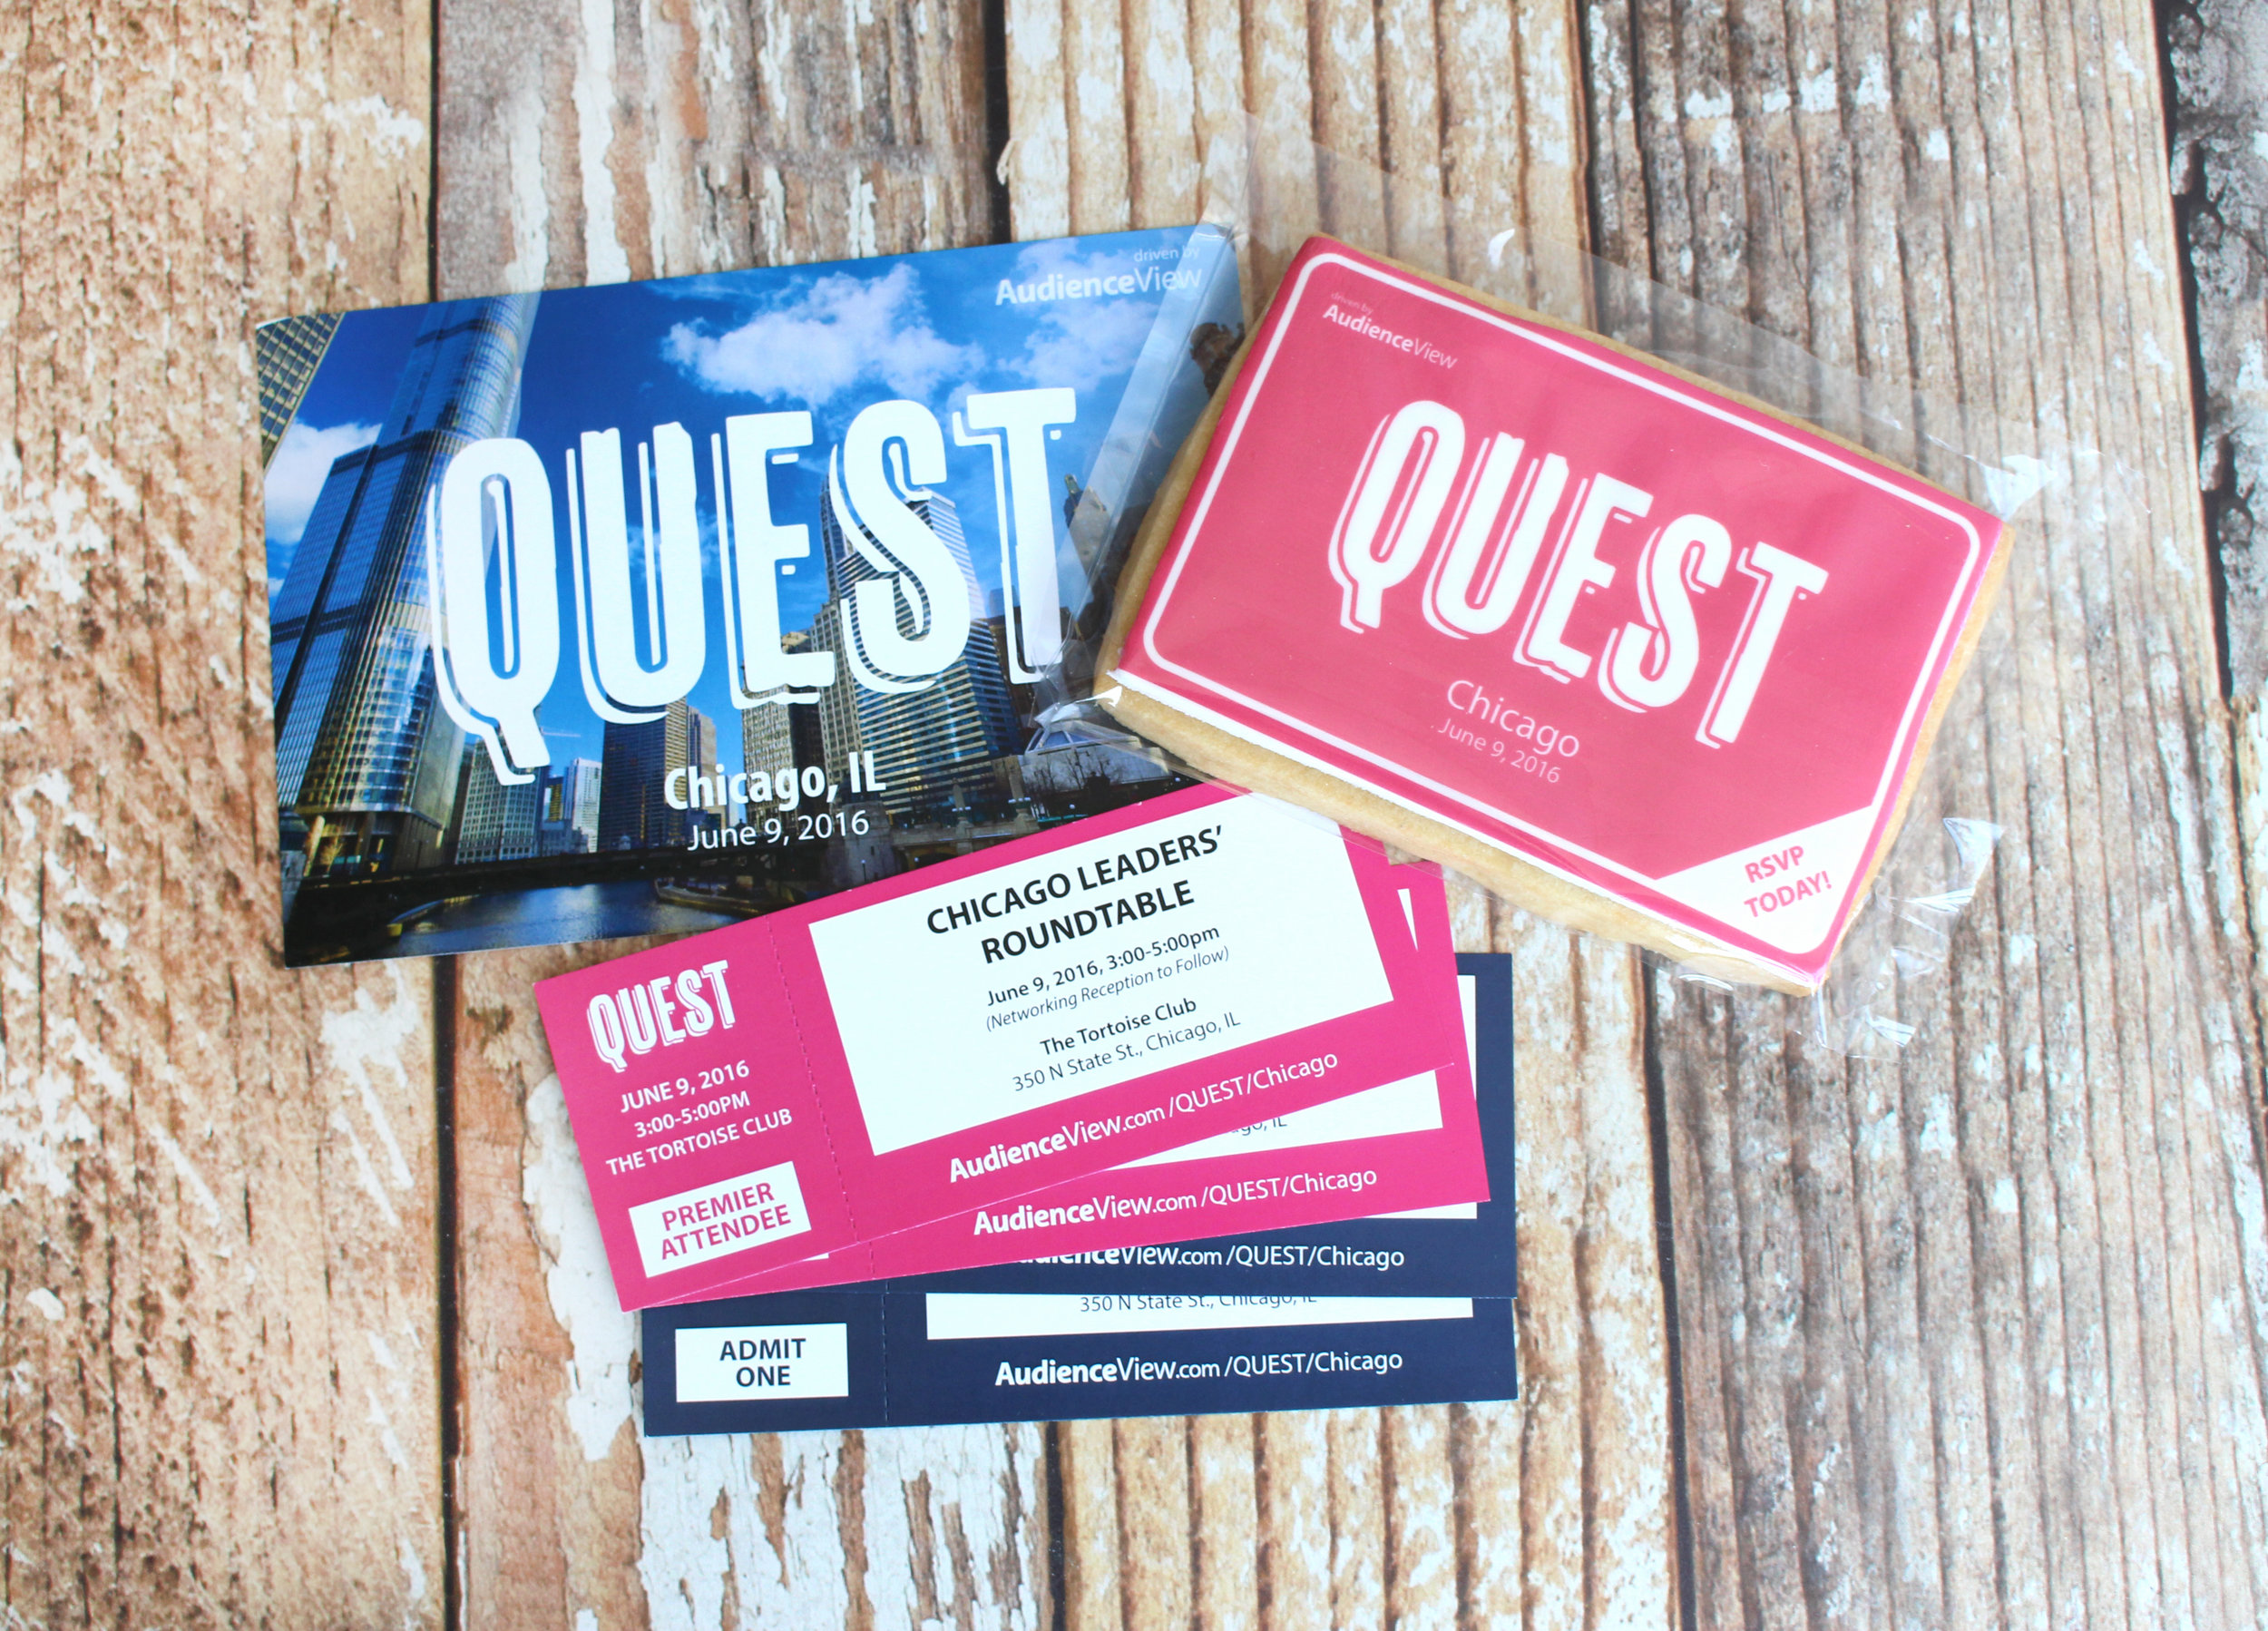 Quest Round Table Invitations - We worked with Audience View on a US-wide mail out to theatres across America, inviting professionals to their round-table events in surrounding cities. A postcard, tickets and our large cookie were included in every package.